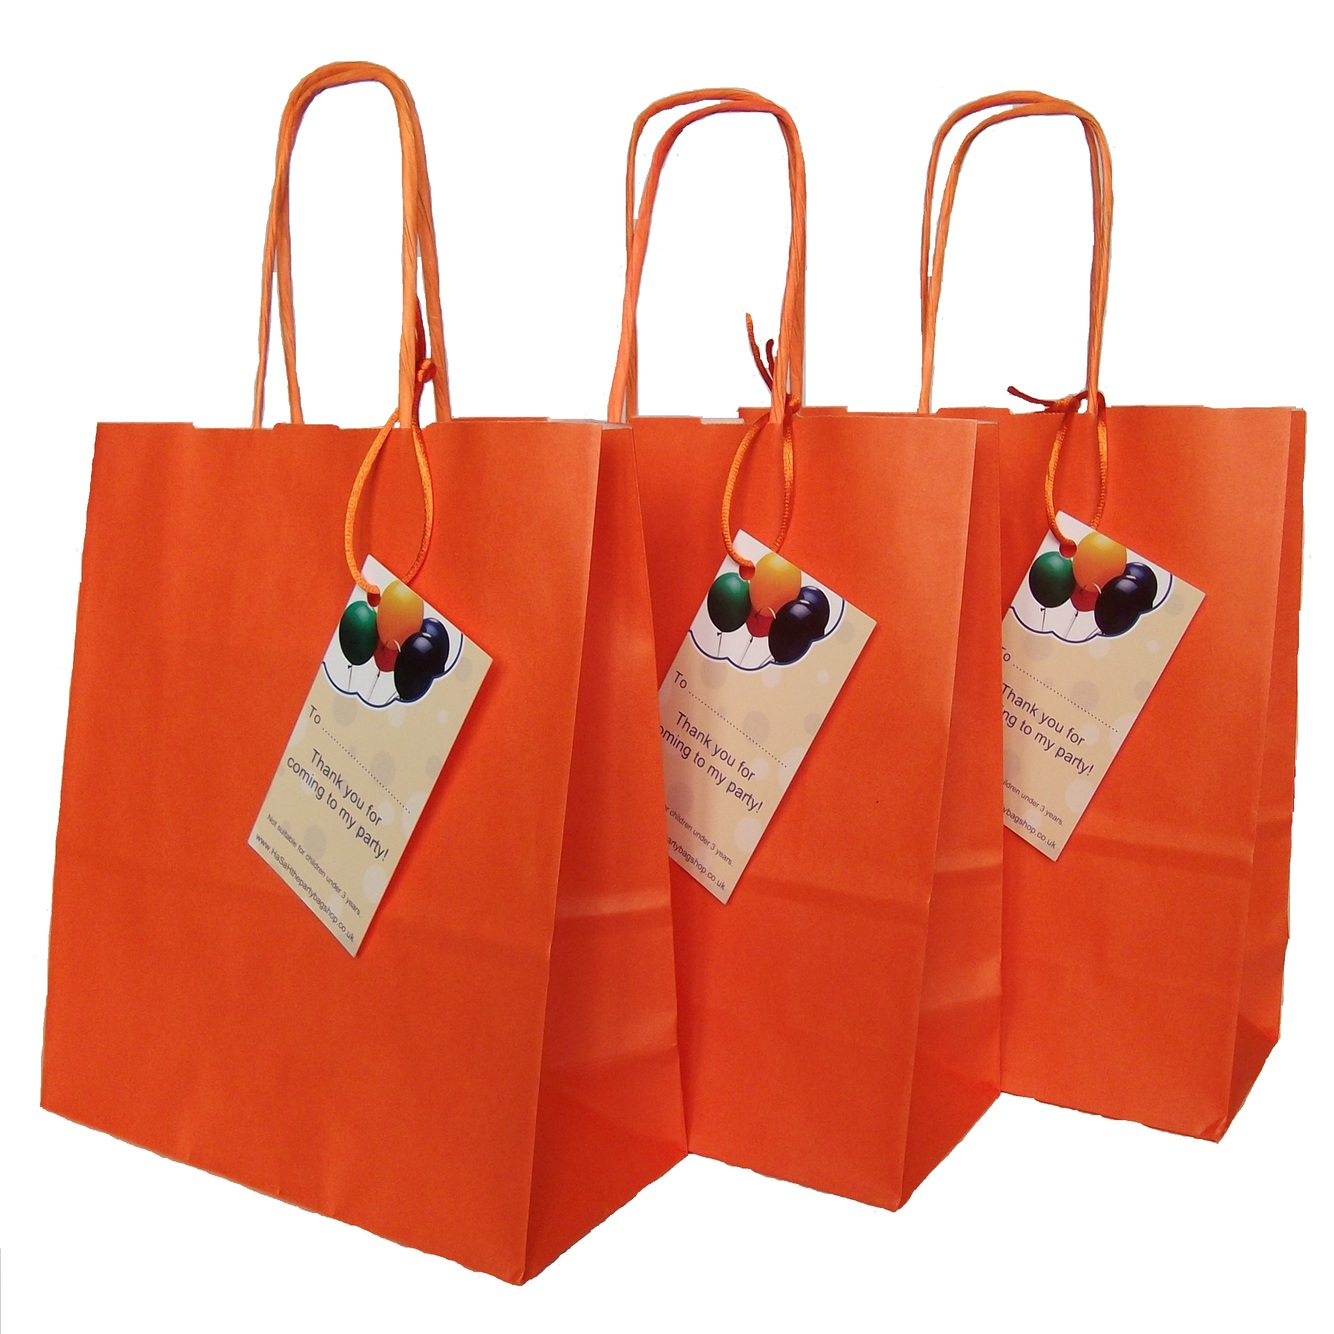 Luxury Orange Paper Party Bags With Handles And Thank You